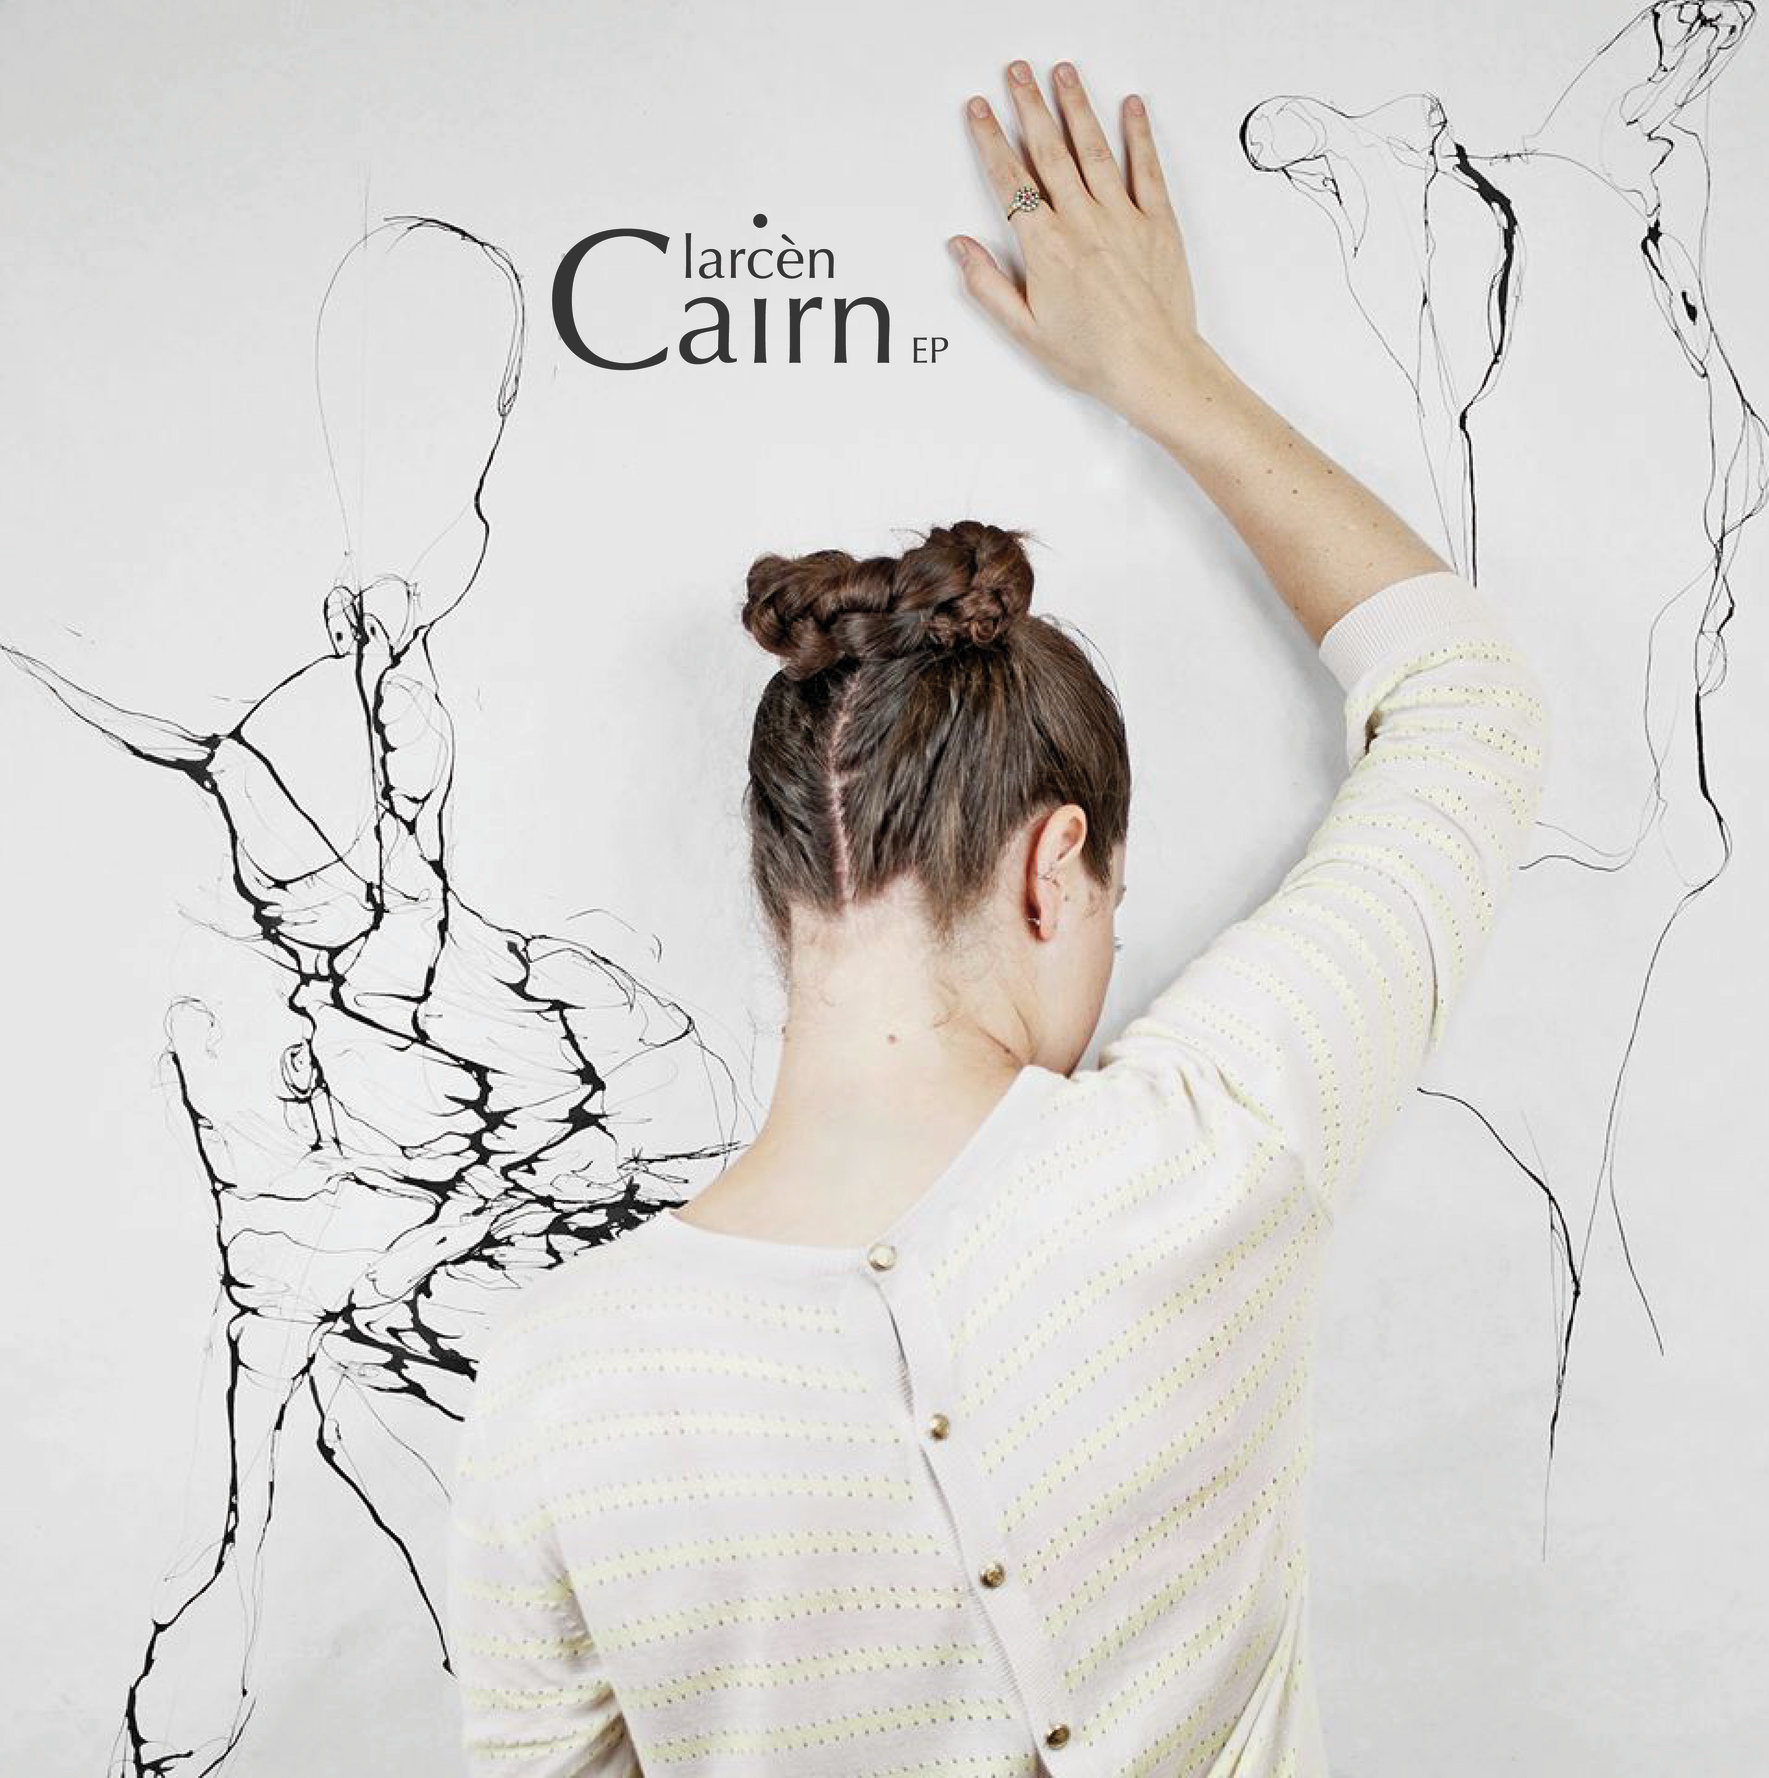 Photo pour l'EP de Clarcèn Cairn, 2013.